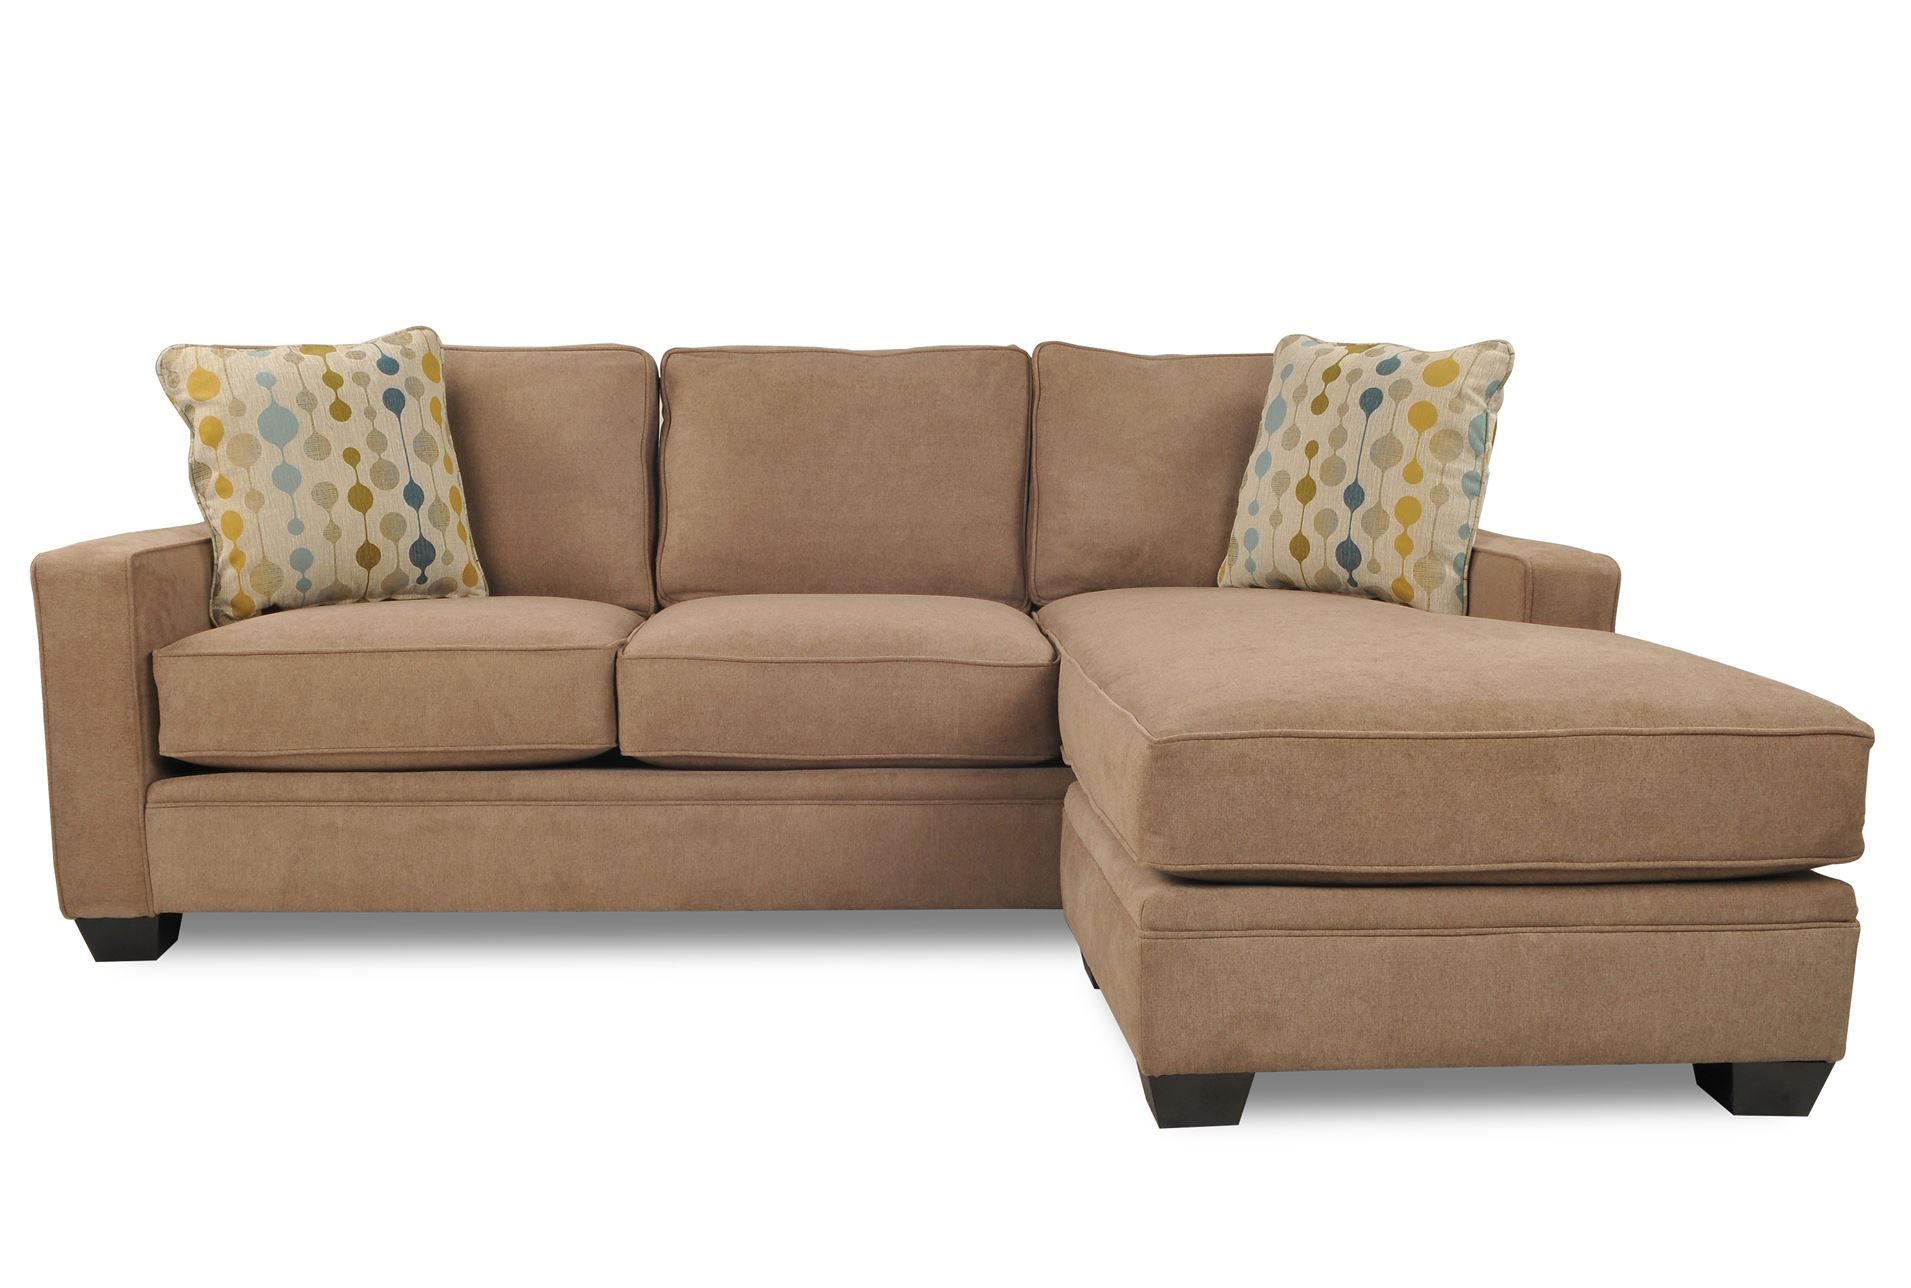 Archer 2 Piece Sectional